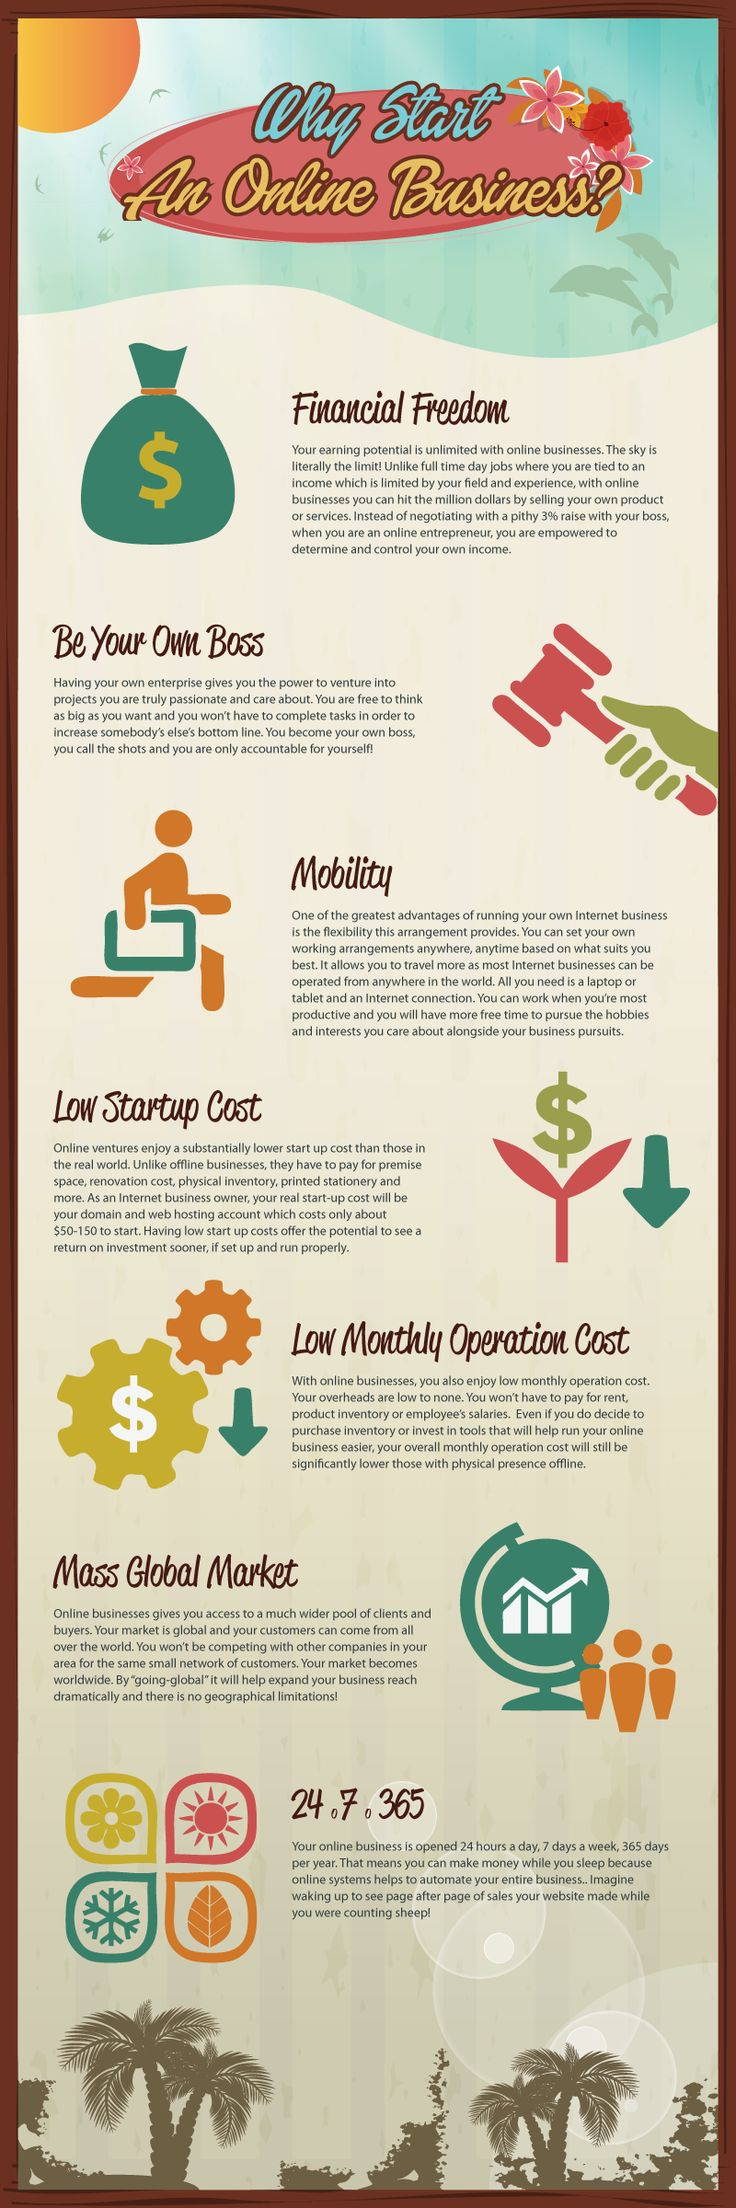 Here's an ‪#‎infographic‬ that lists some of the reasons why you should start an online business.  http://goo.gl/Qjr612